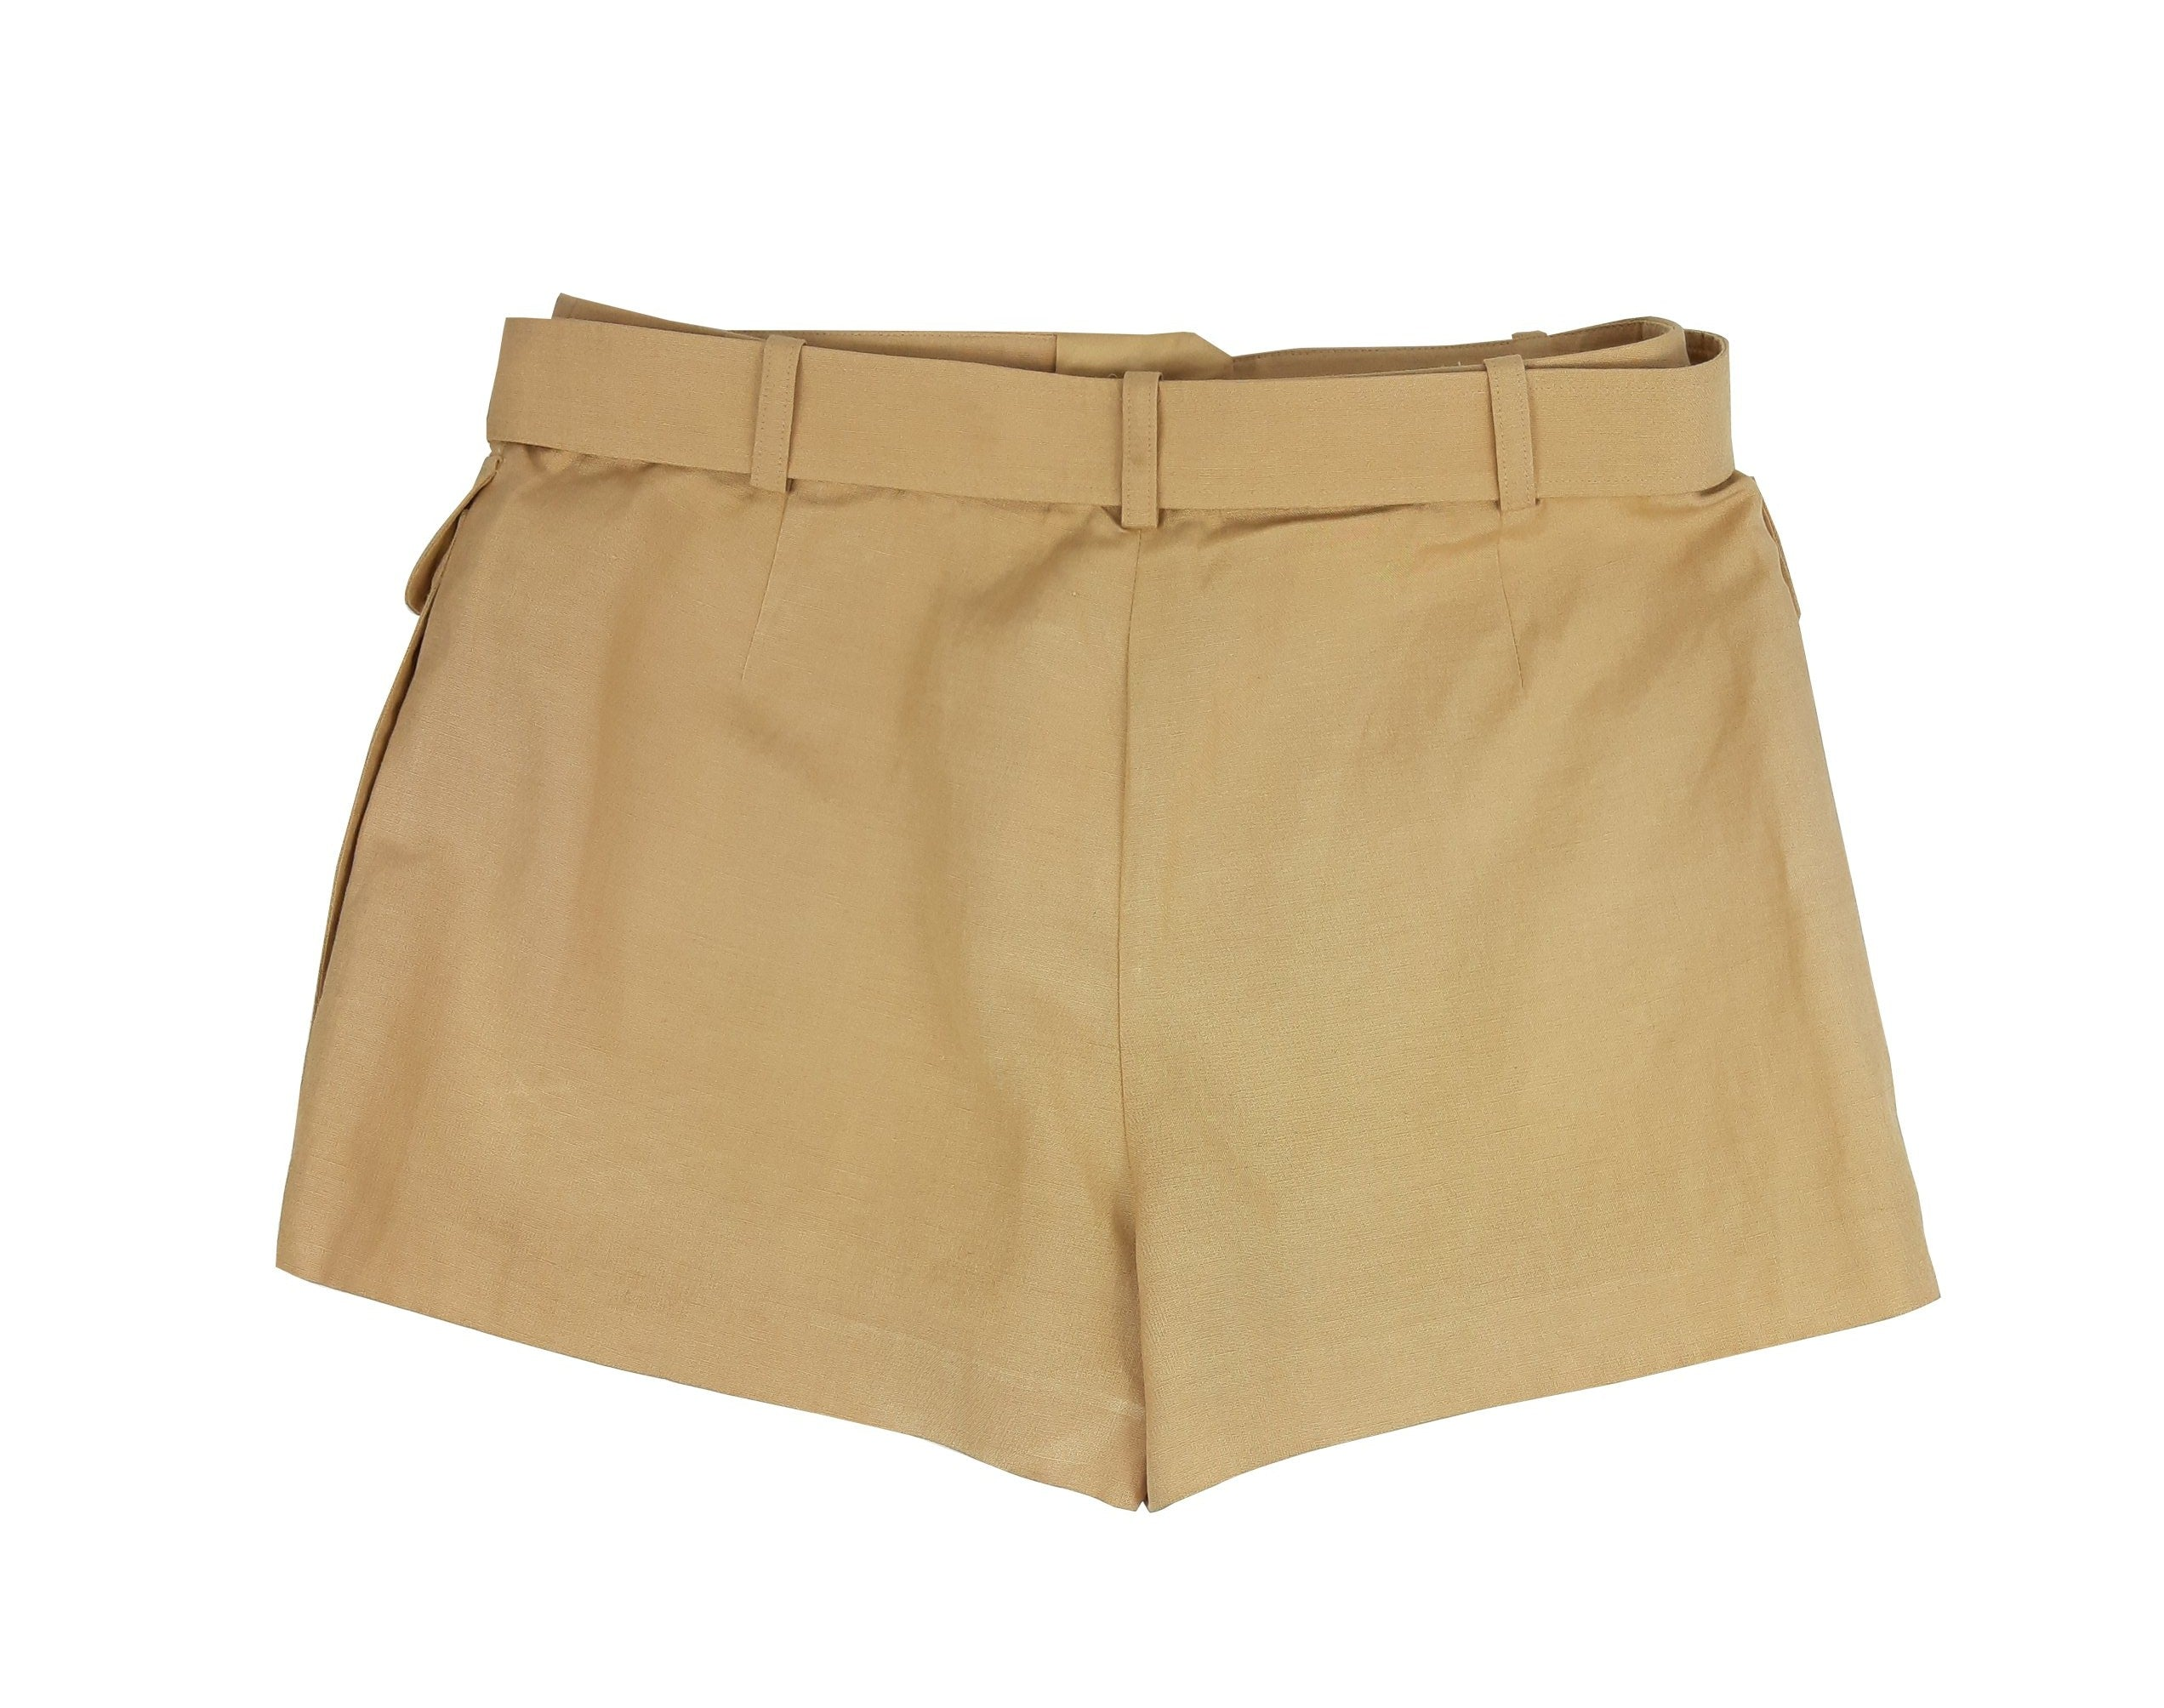 Hermes Shorts in Beige Size 40 (EU)